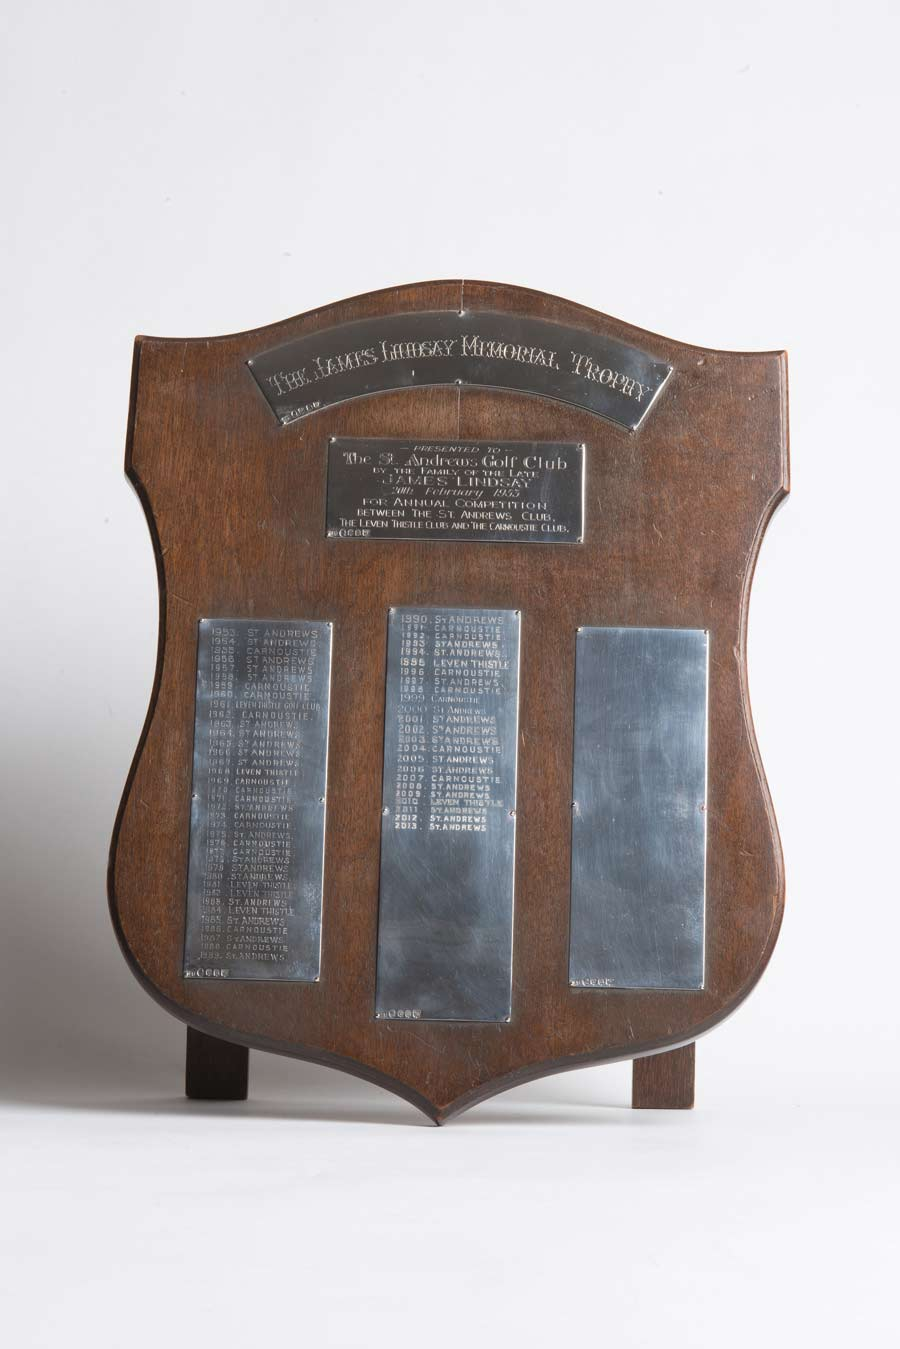 James Lindsay Trophy